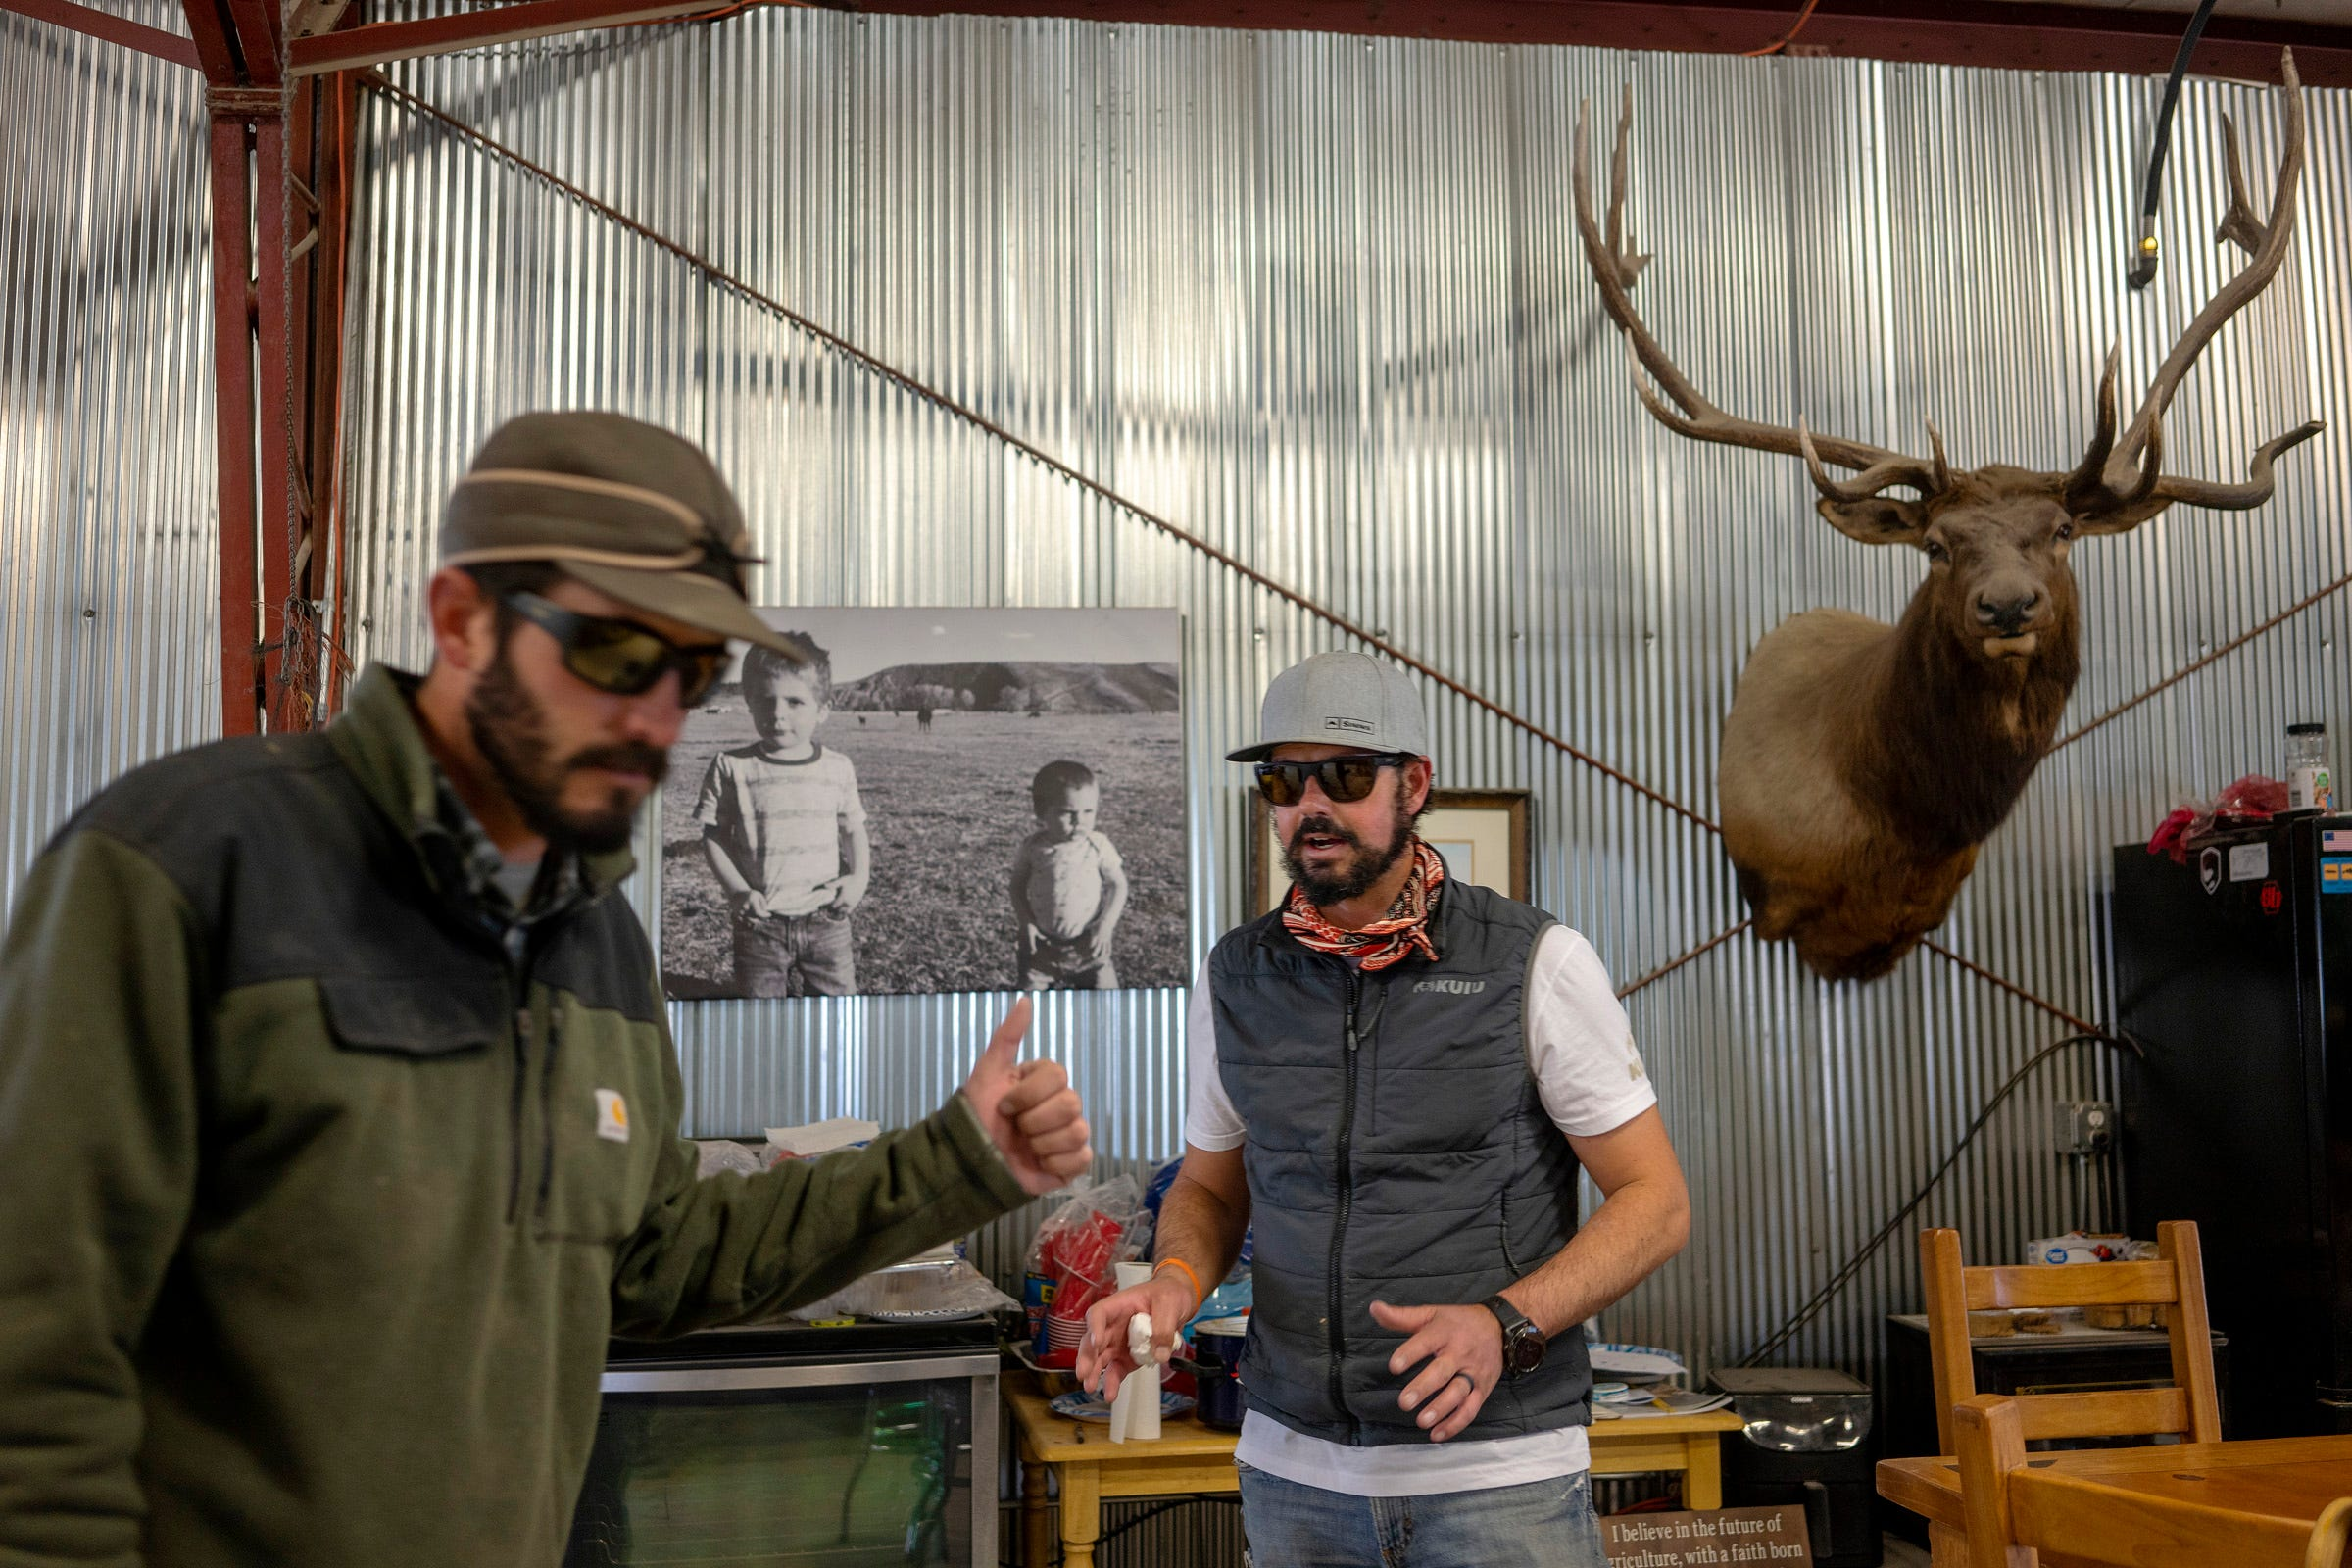 Doug Bruchez, left, talks with his brother Paul Bruchez, right, while they fix a door in the shop where they keep their tractor and ranch equipment near Kremmling, Colorado.